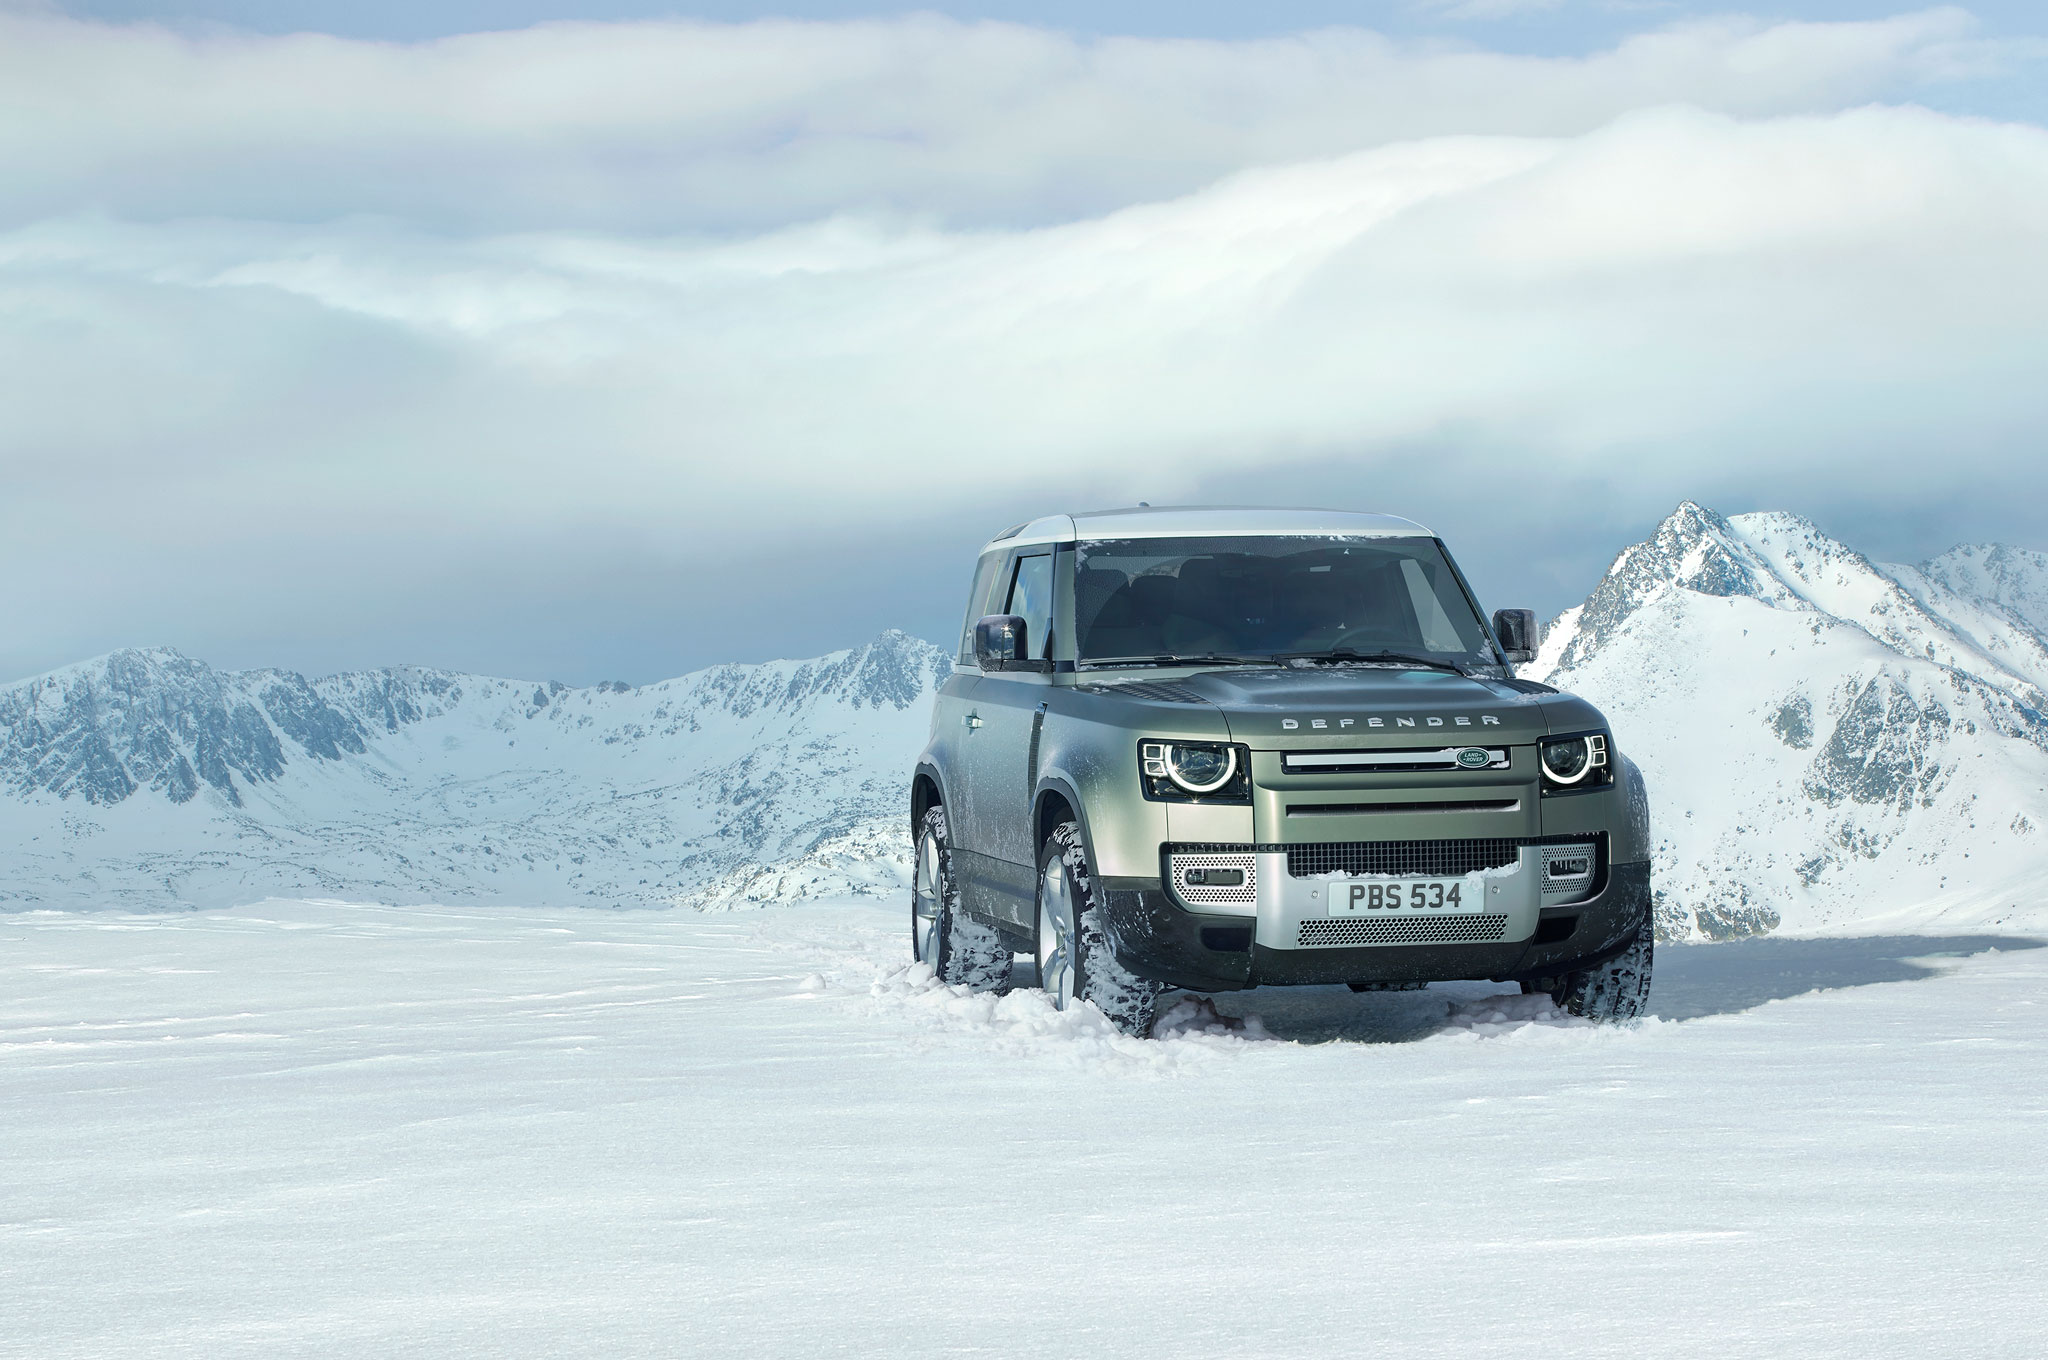 2020 land rover defender 90 off road snow 03